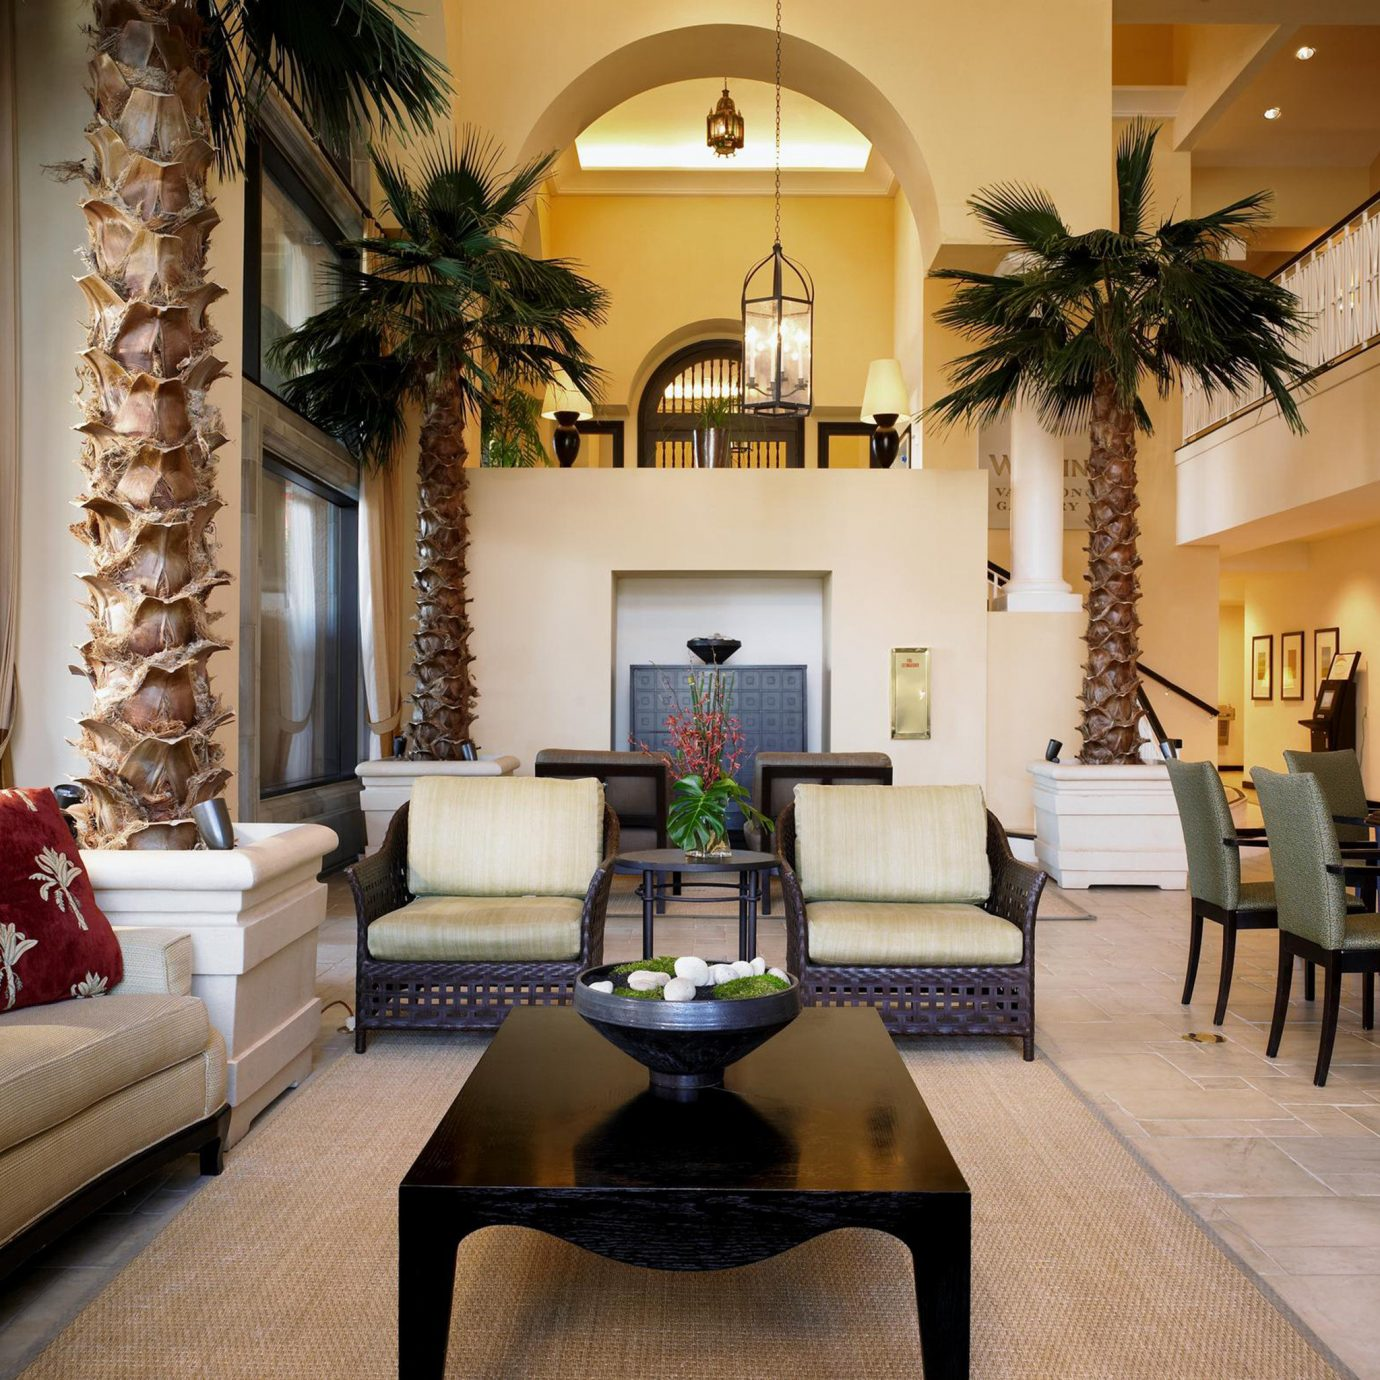 Lounge Luxury Scenic views property Lobby living room home Villa mansion Suite